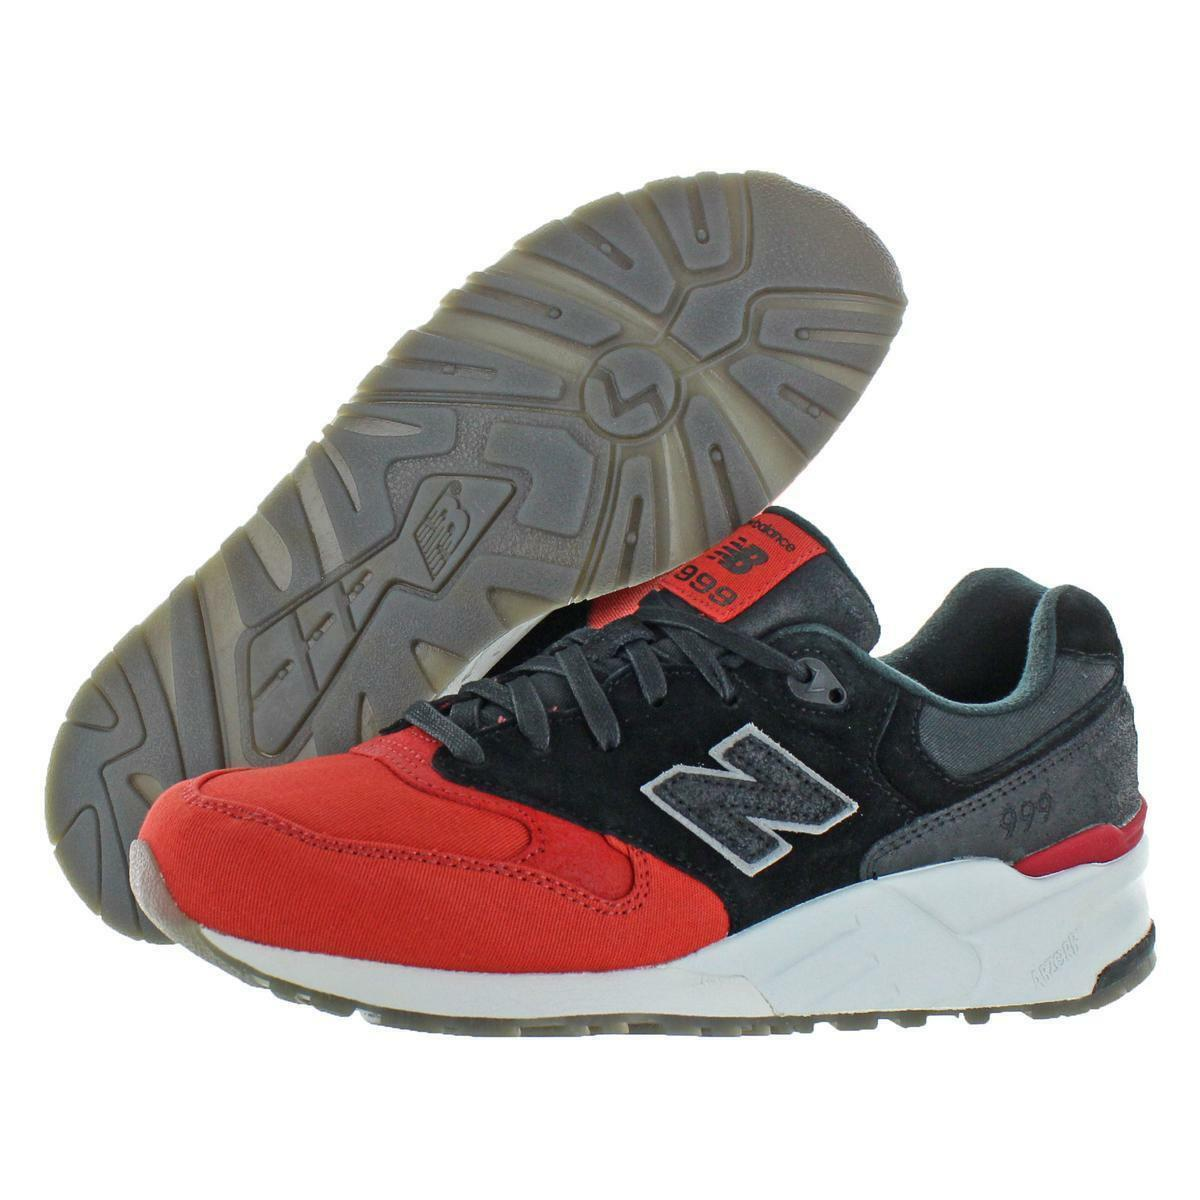 code promo 93ceb 4a048 Details about New Balance ML999 Men's Running Shoe's Black/Red (ML999WXB)  SZ 8.5